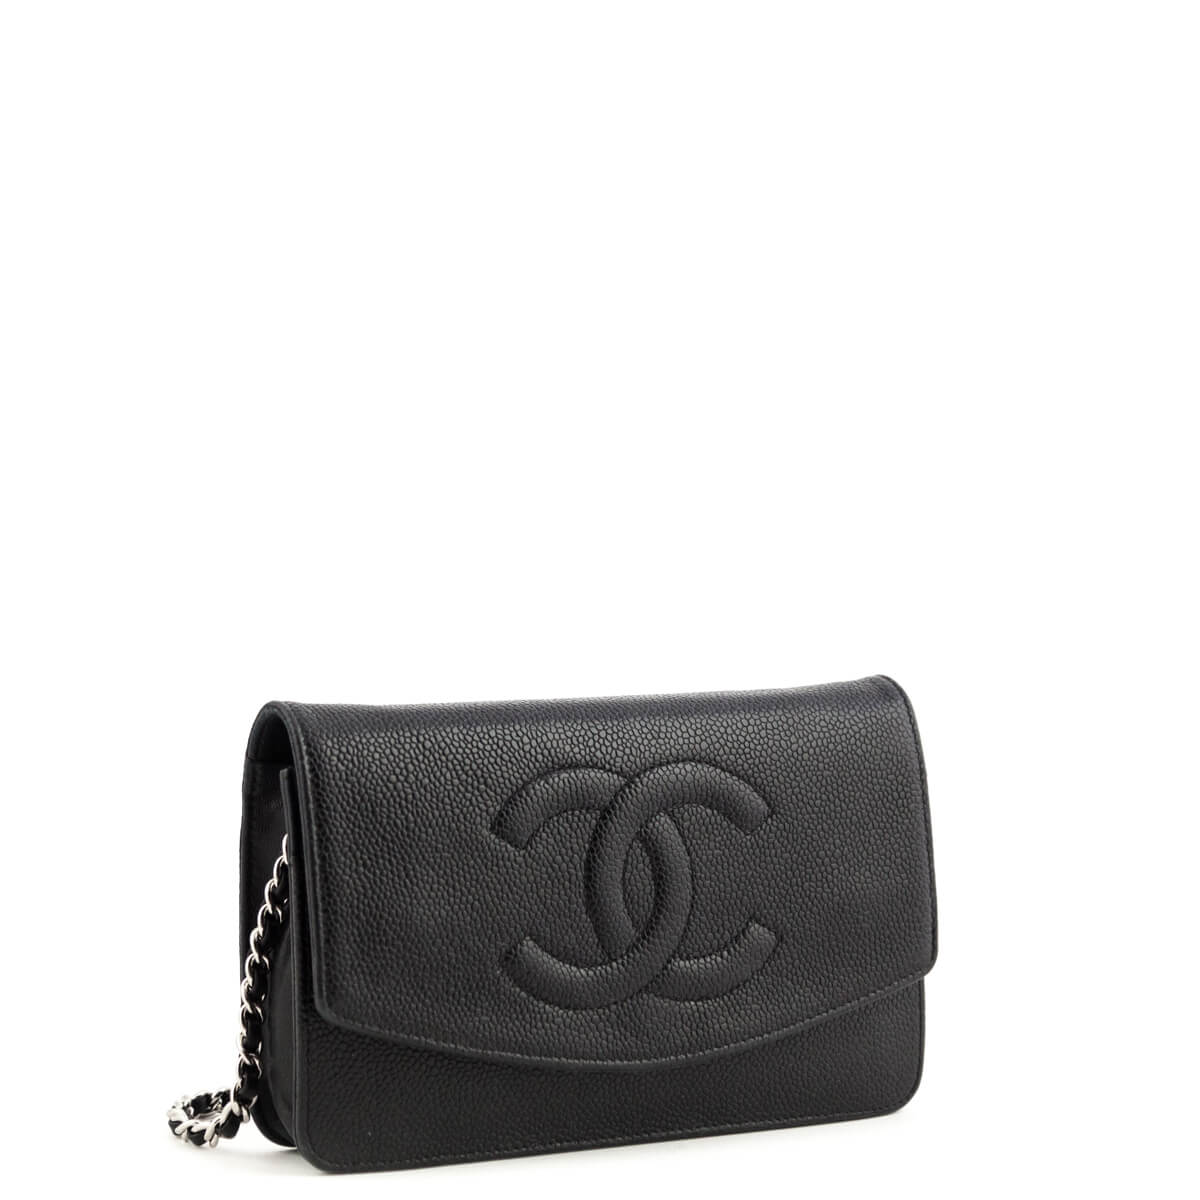 a7f93b0c43c4 ... Chanel Black Caviar Timeless CC Wallet on Chain SHW - LOVE that BAG -  Preowned Authentic ...